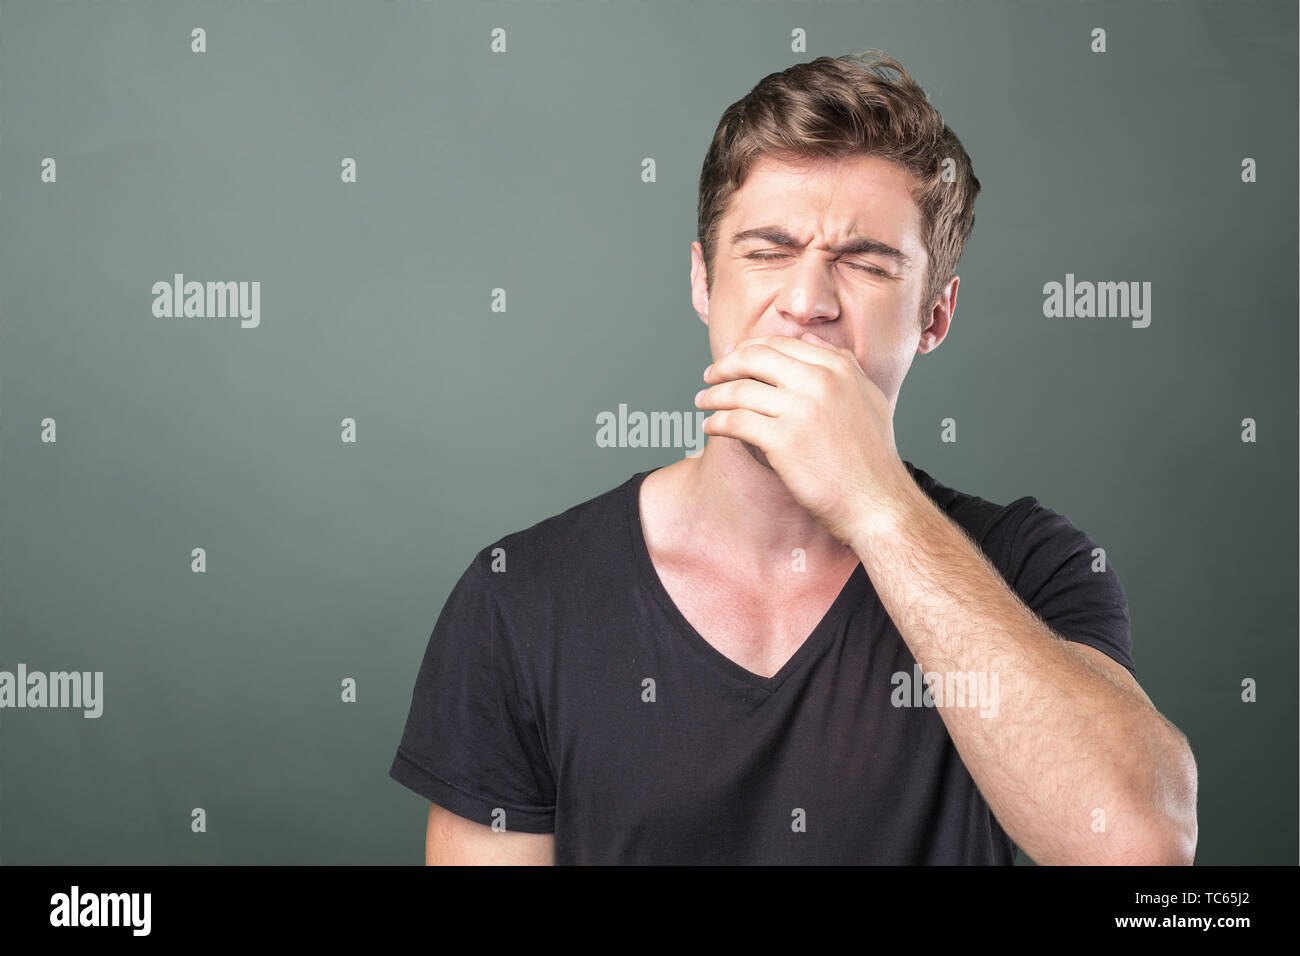 Portrait of yawning man - Stock Image